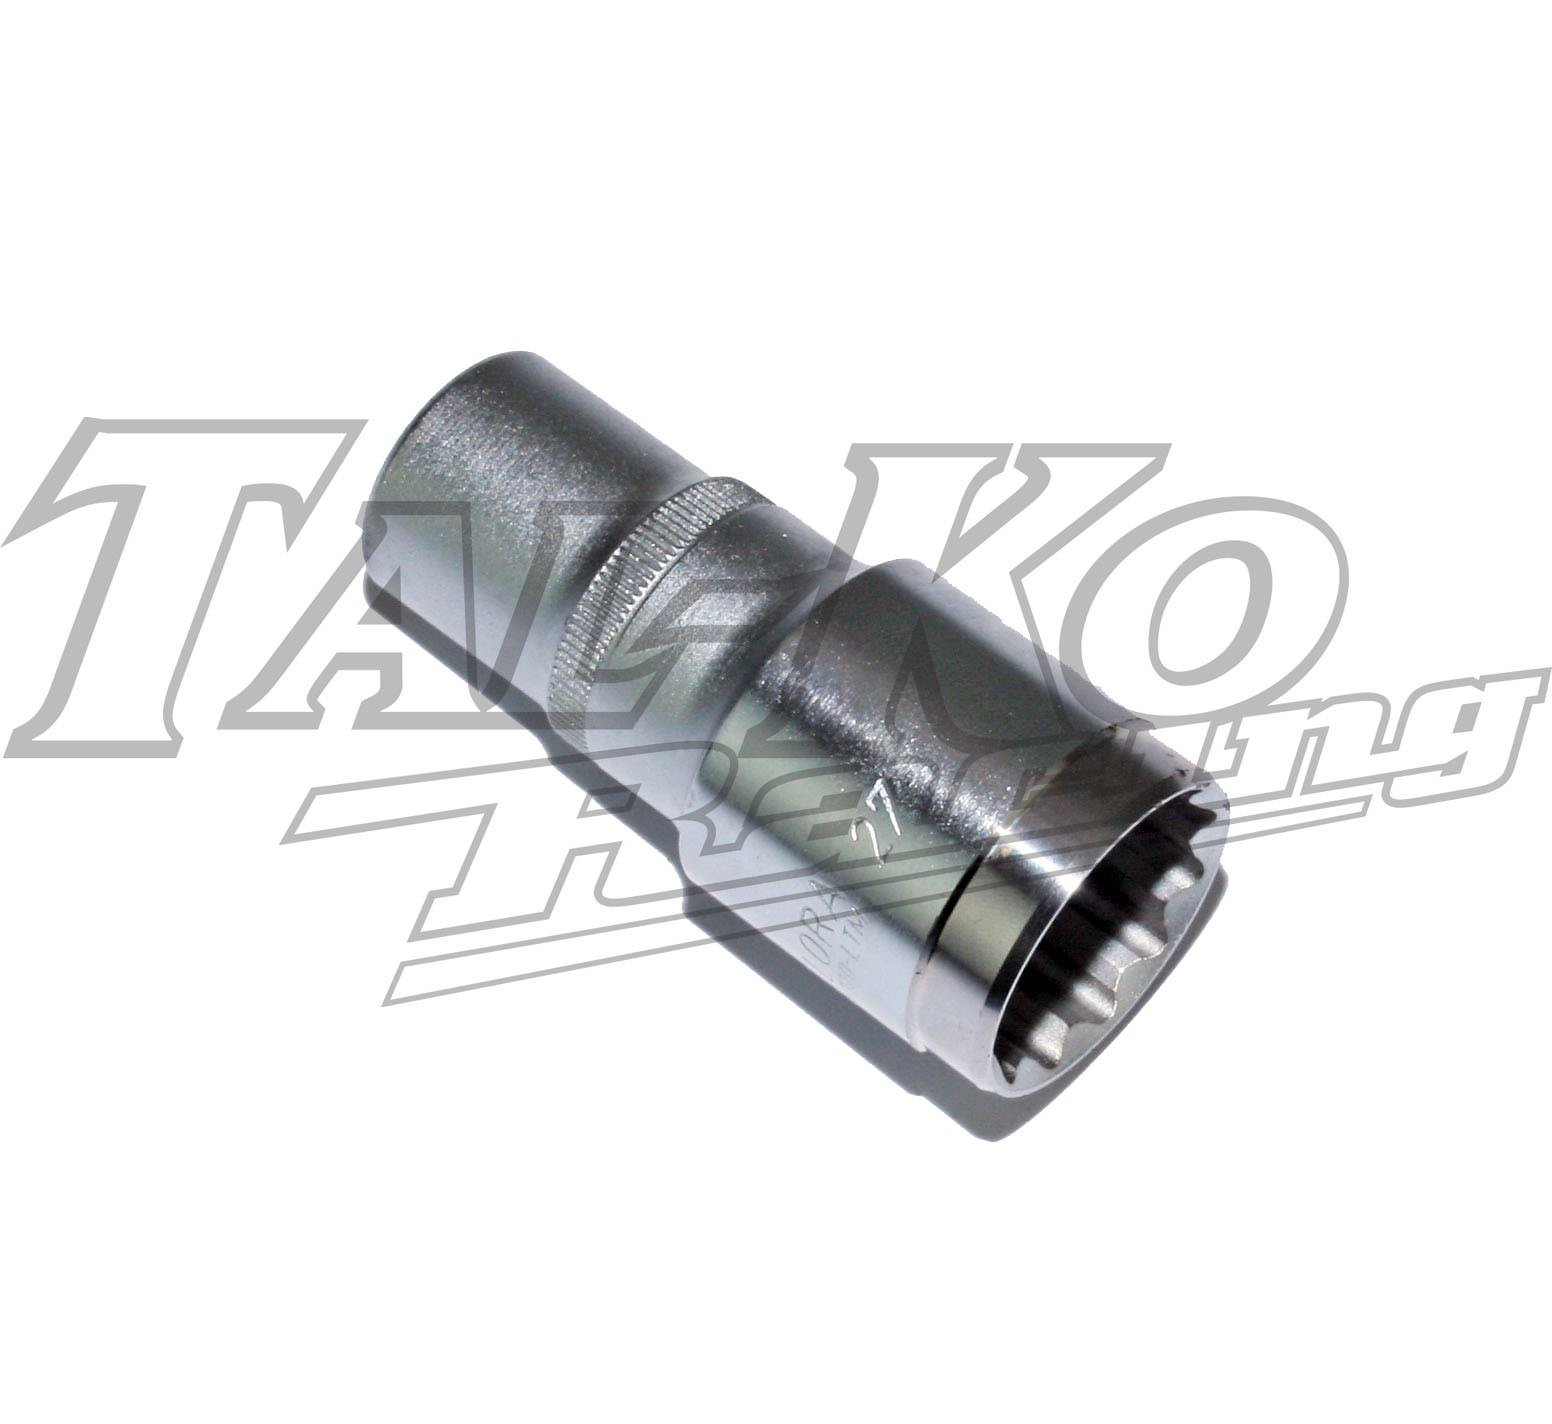 TKM BT82 LONG SOCKET 27mm A/F MACHINED FRONT